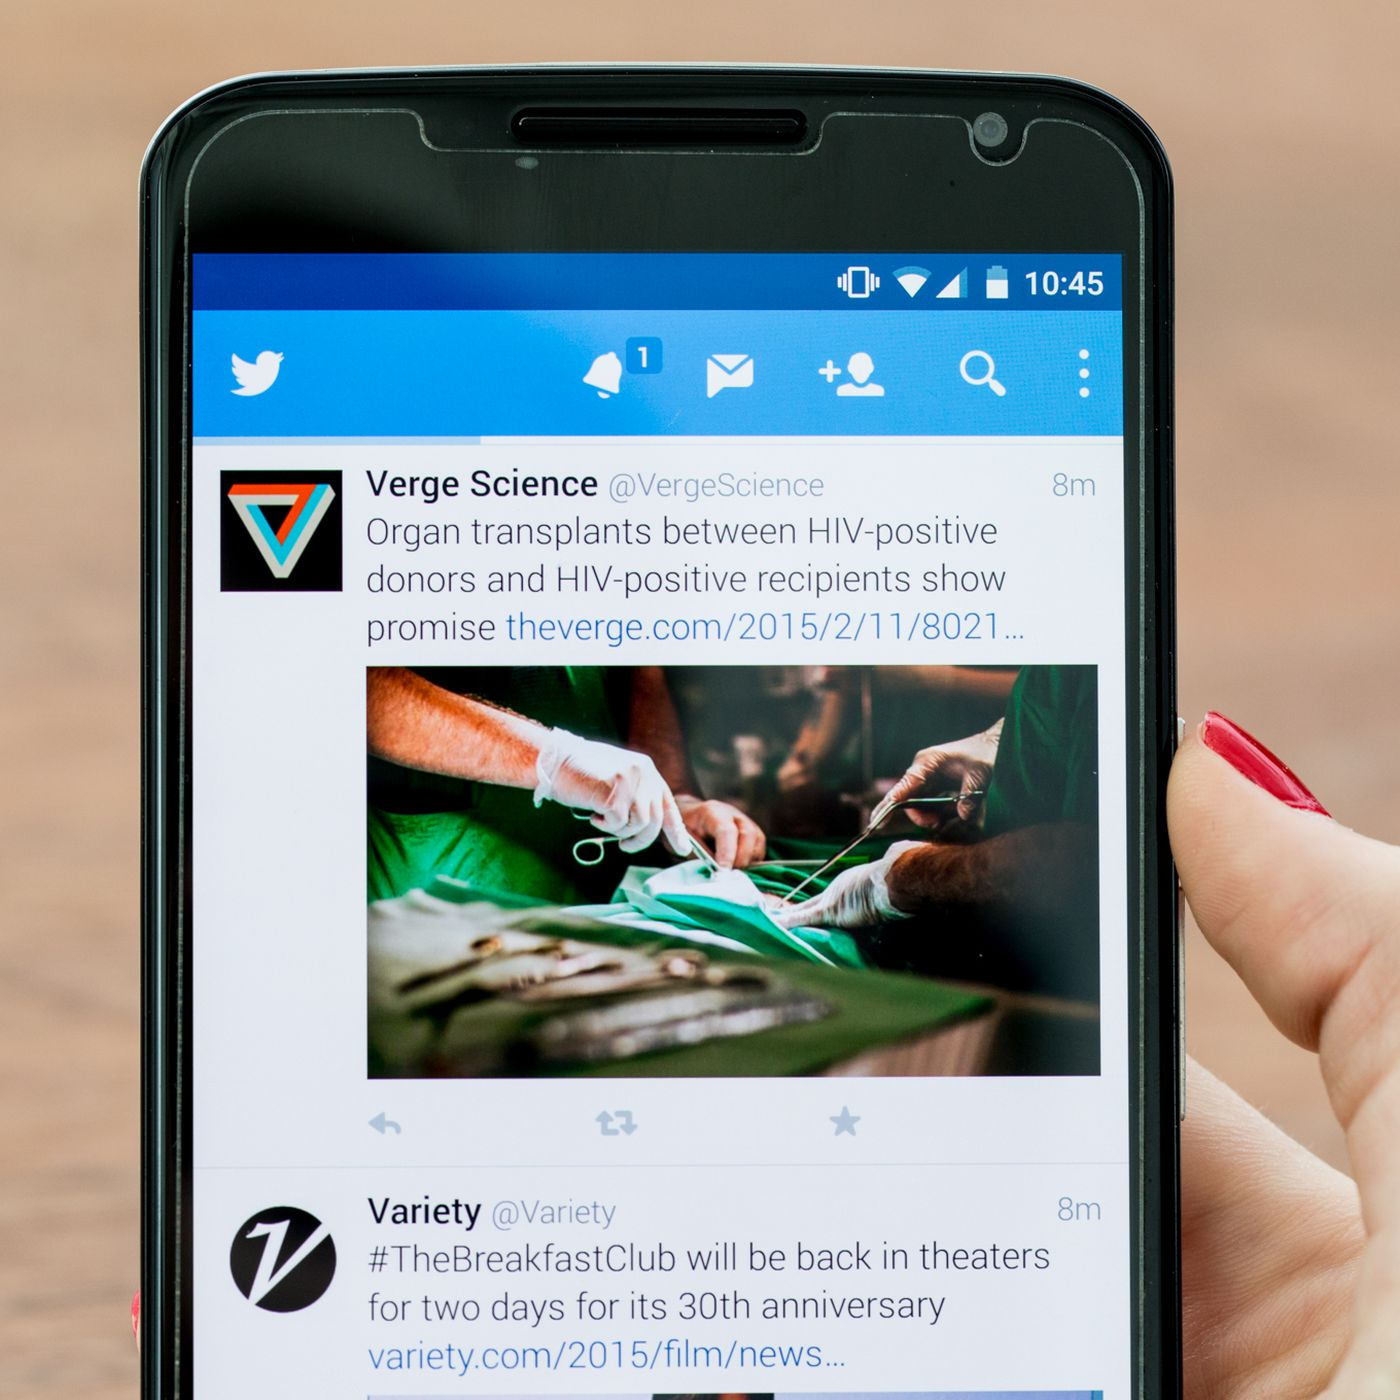 Twitter Just Doubled The Character Limit For Tweets To 280 The Verge